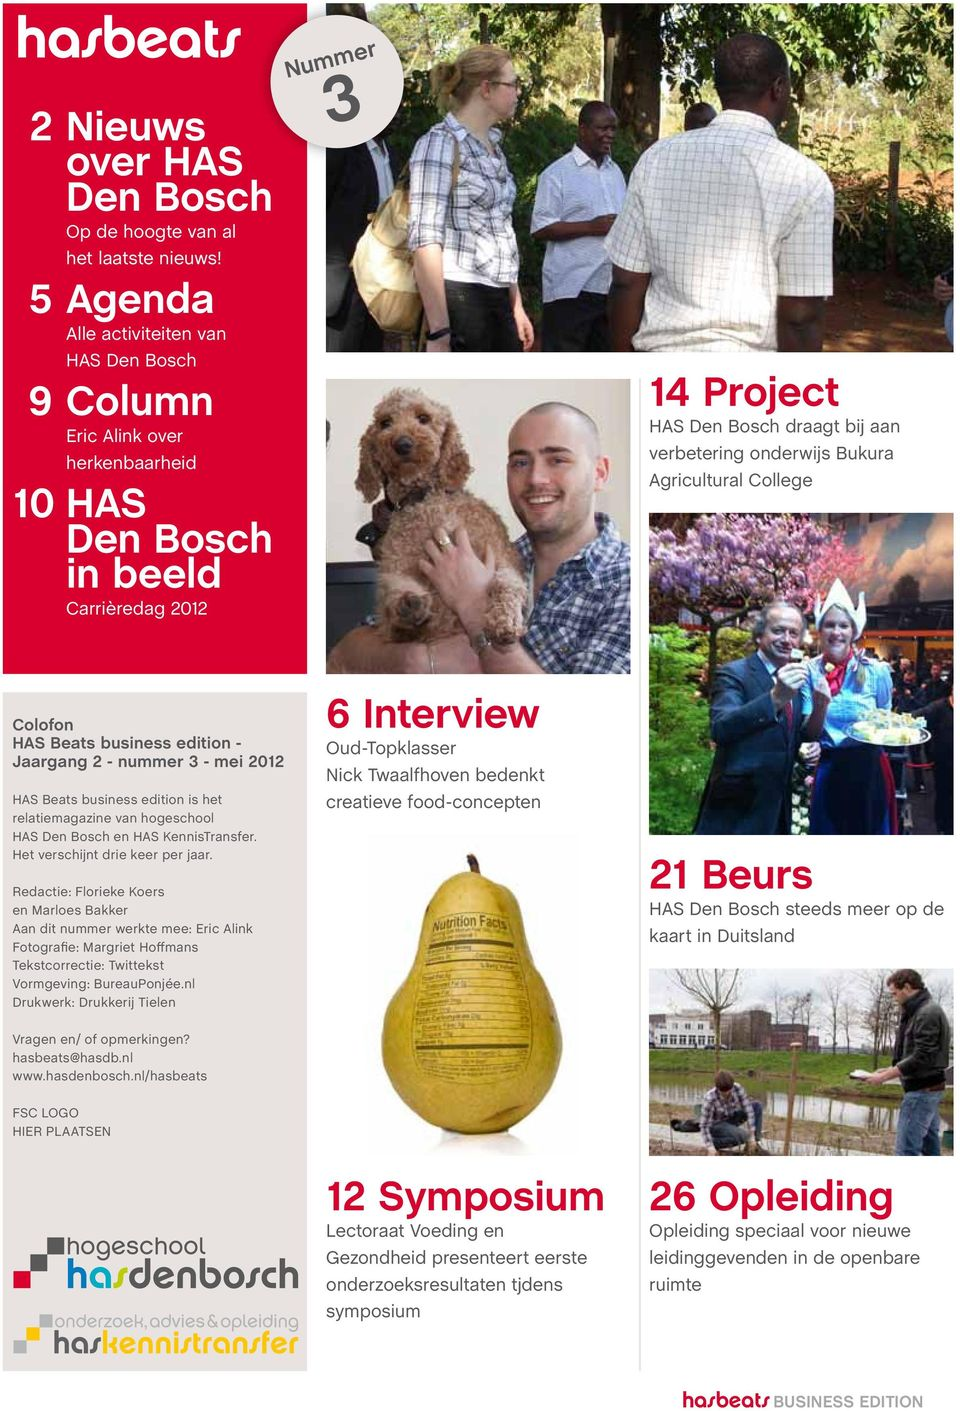 Bukura Agricultural College Colofon HAS Beats business edition - Jaargang 2 - nummer 3 - mei 2012 HAS Beats business edition is het relatiemagazine van hogeschool HAS Den Bosch en HAS KennisTransfer.